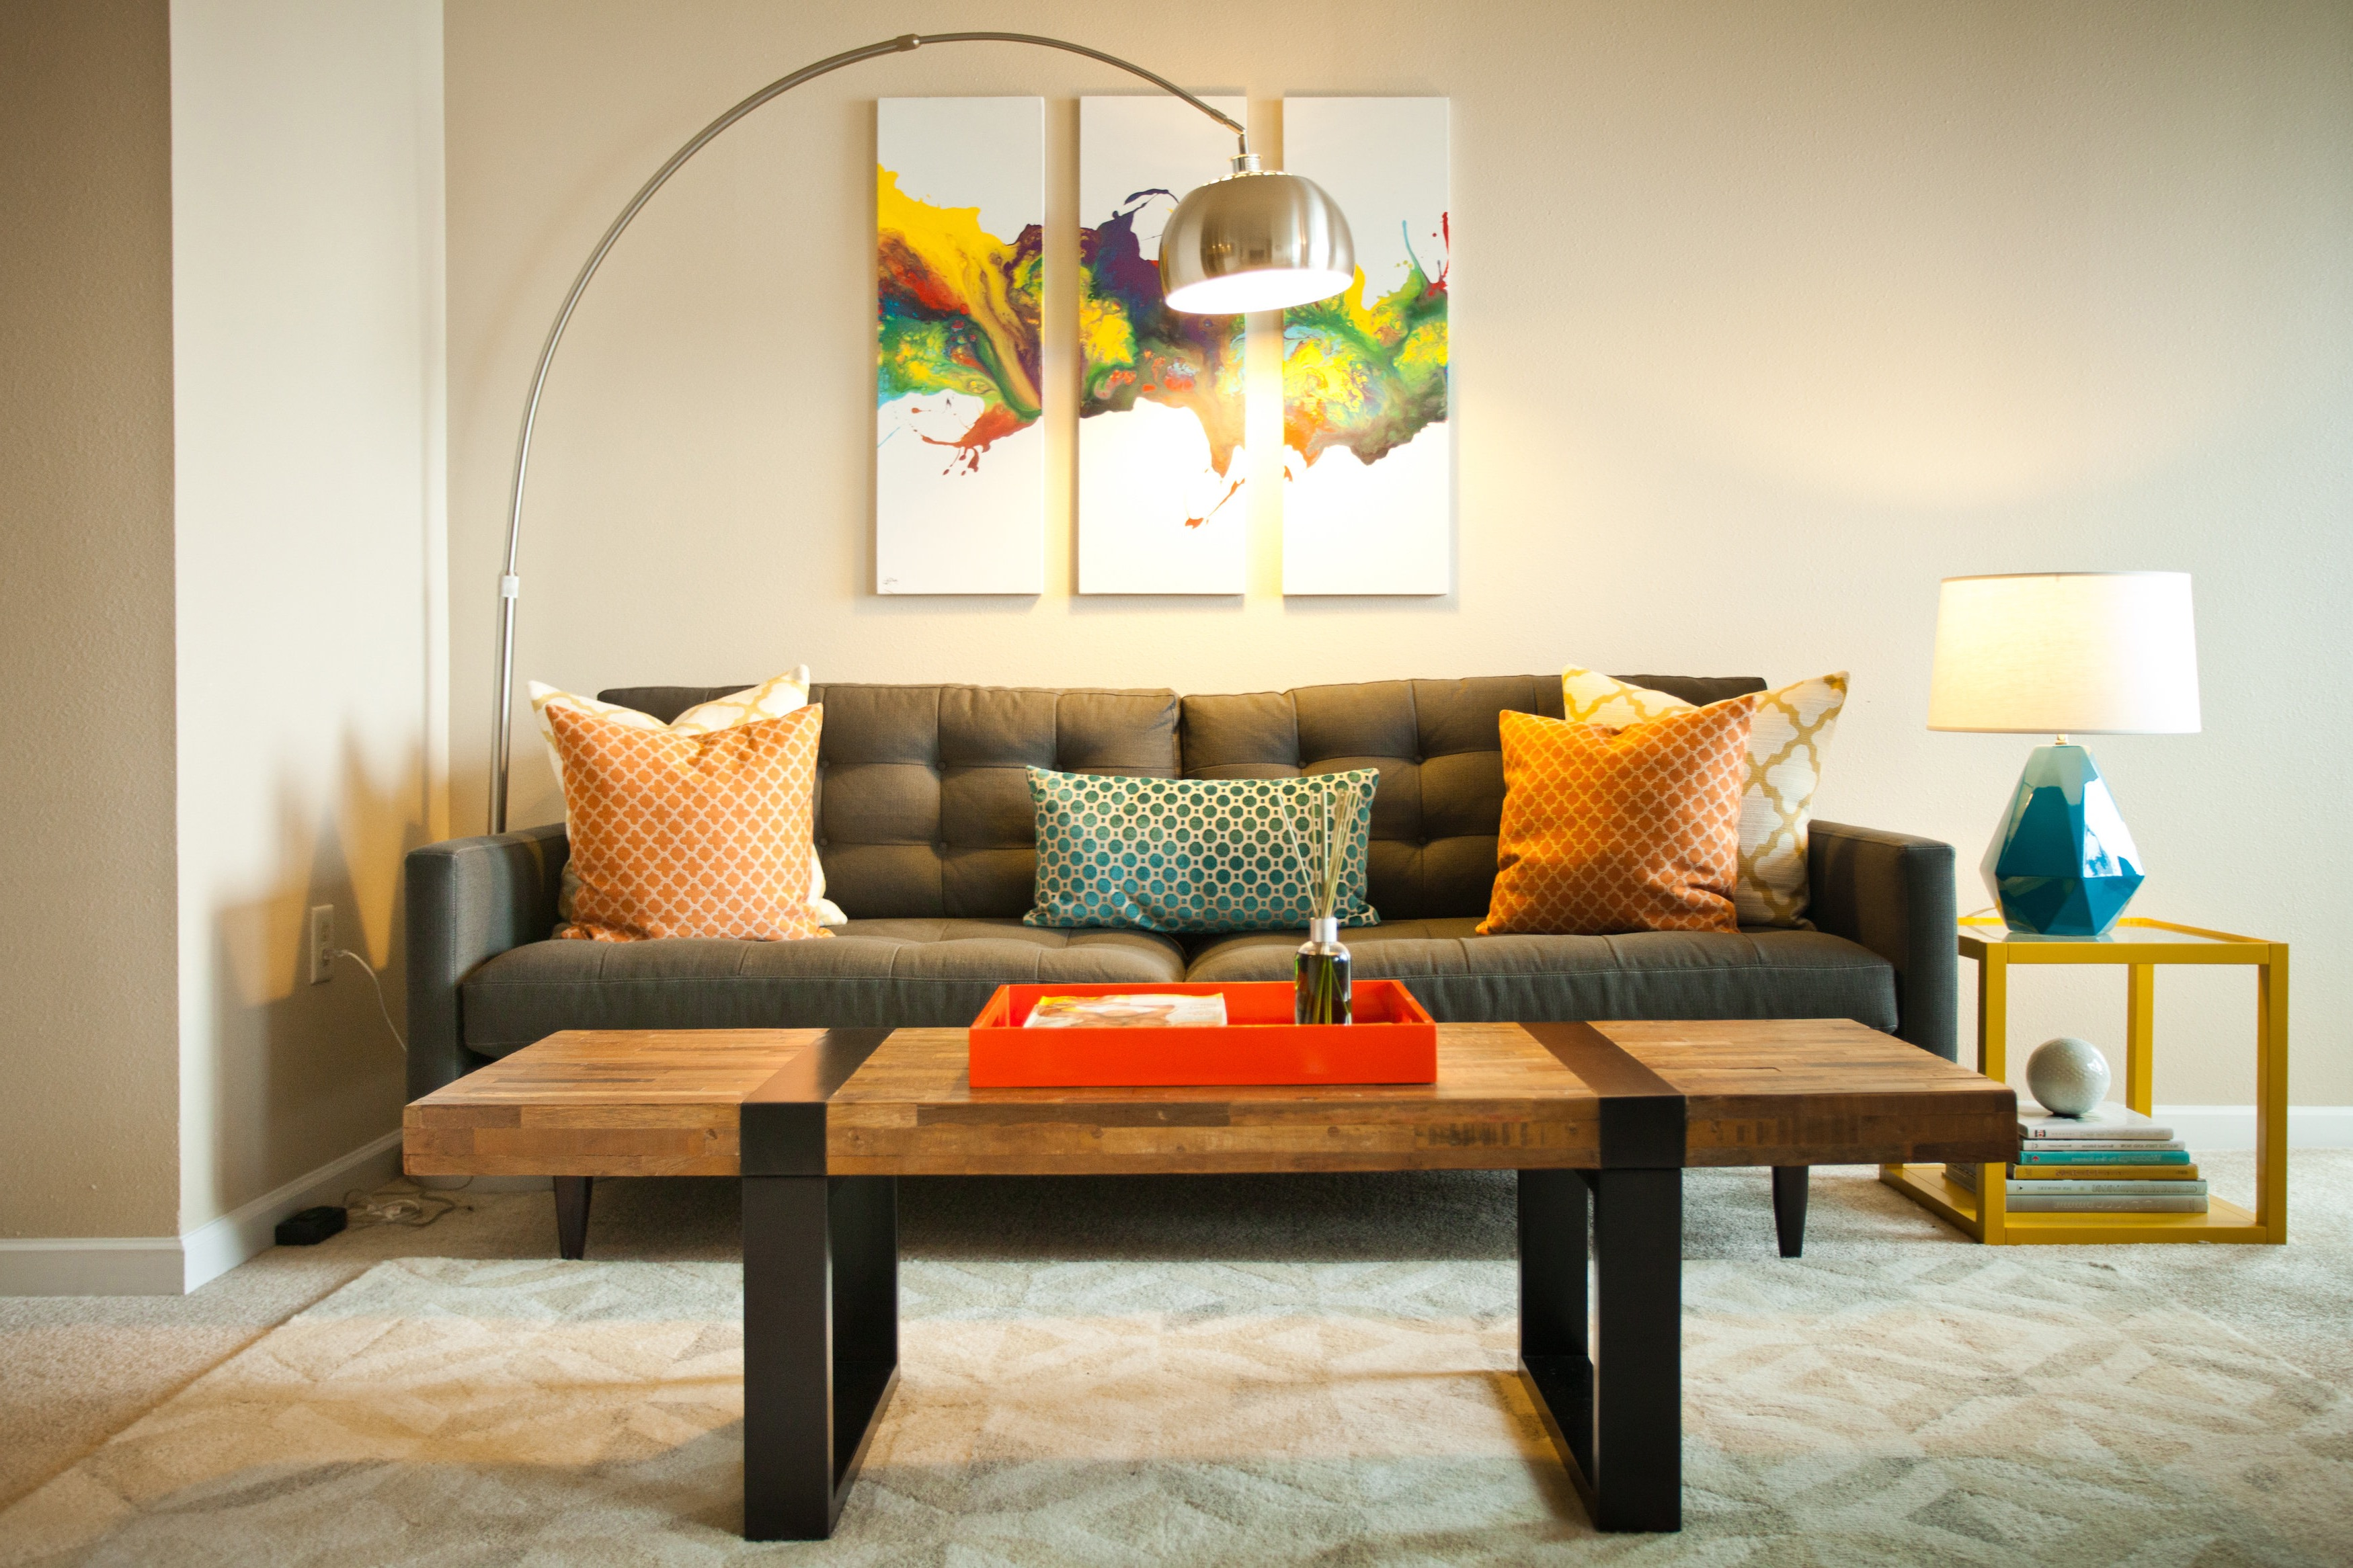 Modern Living Space With Orange Color Accents (Image 12 of 20)